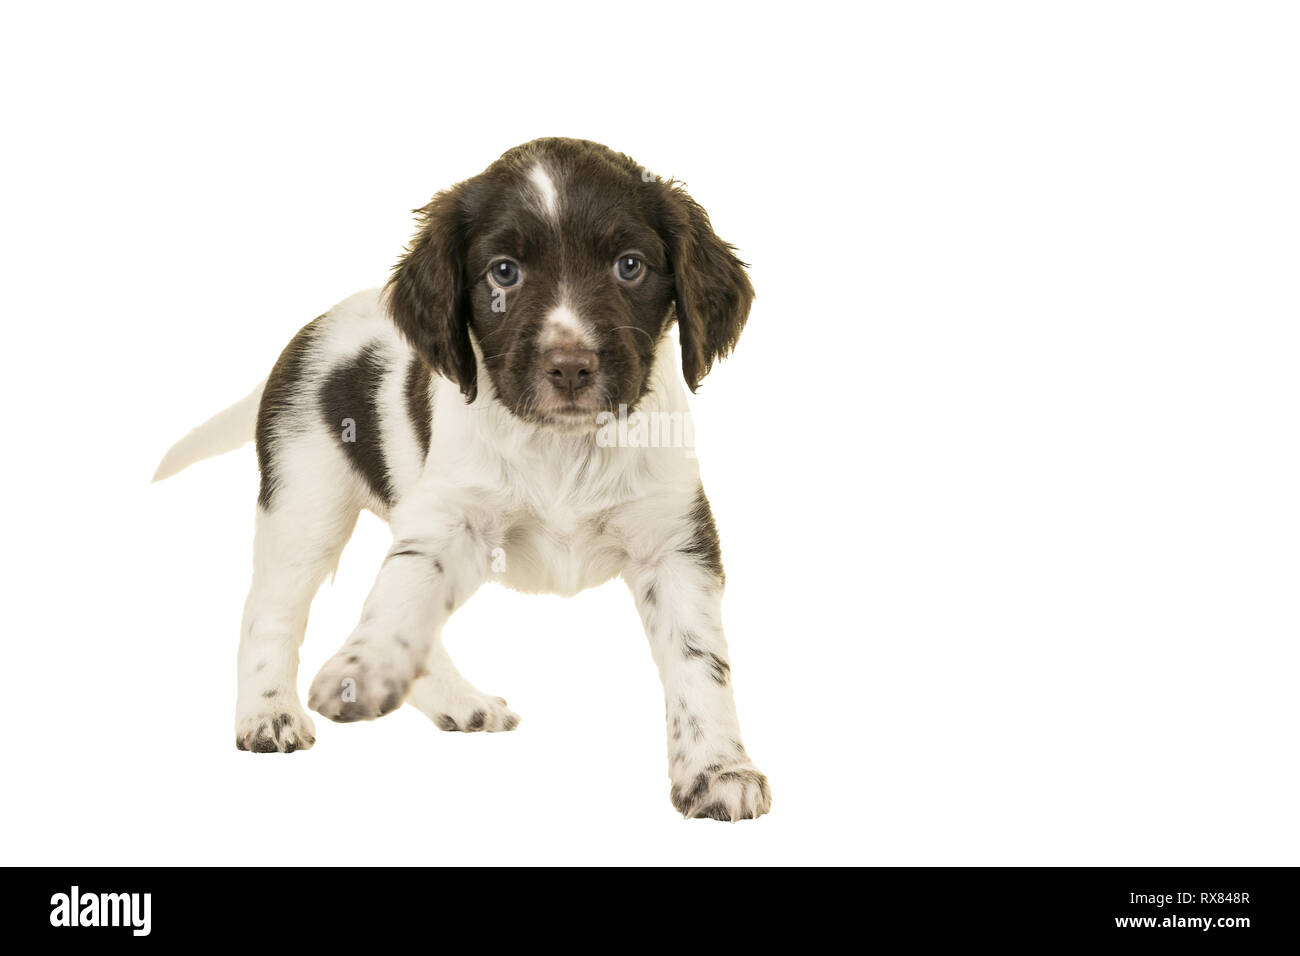 Cute Small Munsterlander Puppy standing on isolated on a white background paw up - Stock Image